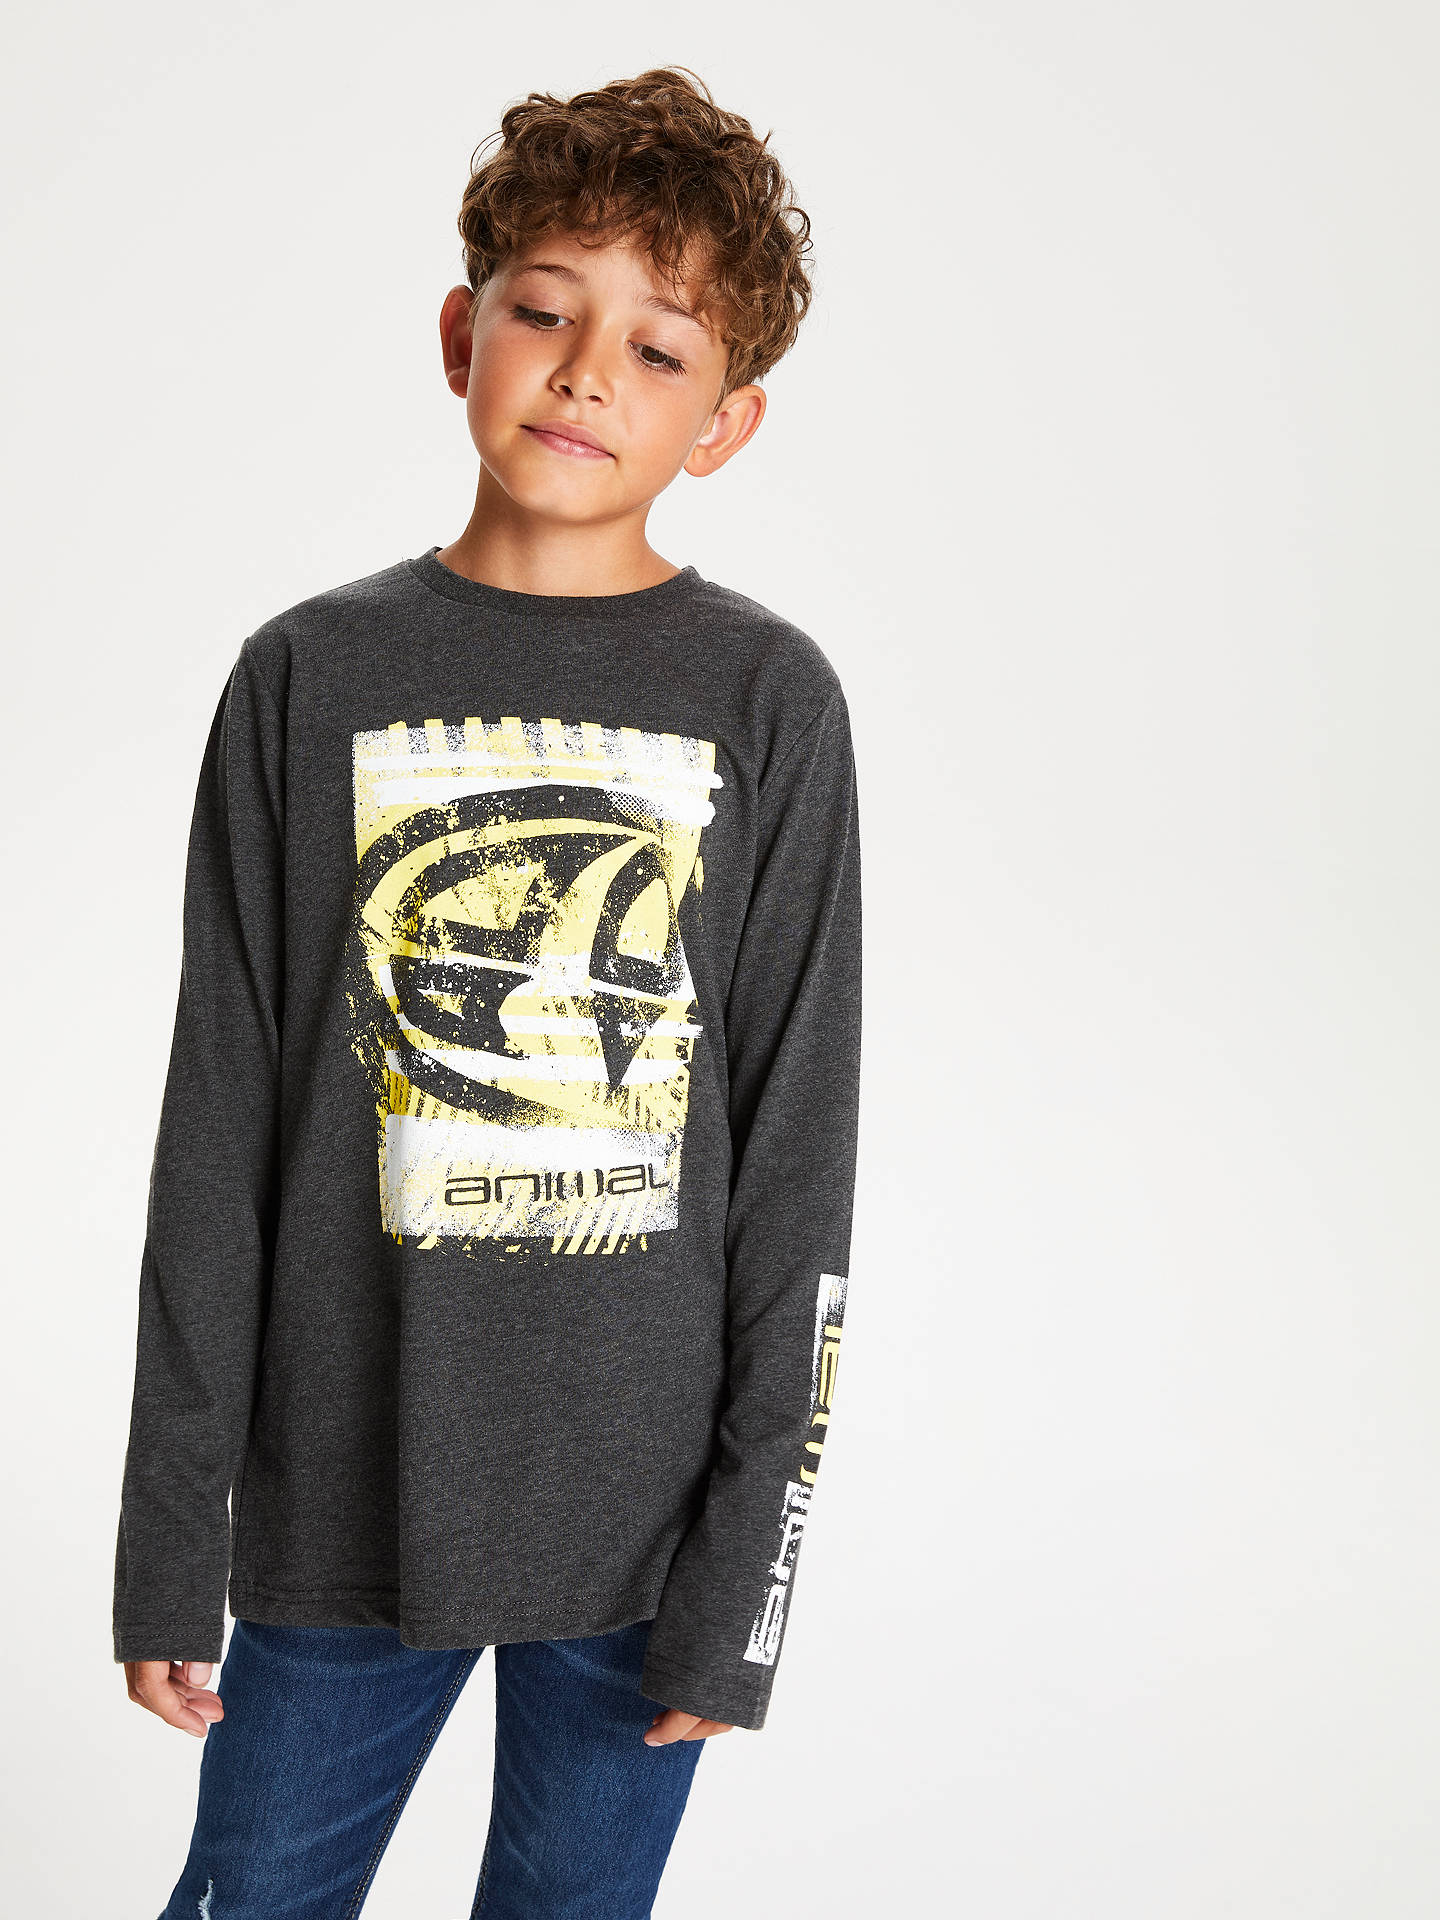 Buy Animal Boys' Long Sleeve Board T-Shirt, Charcoal, 7-8 years Online at johnlewis.com